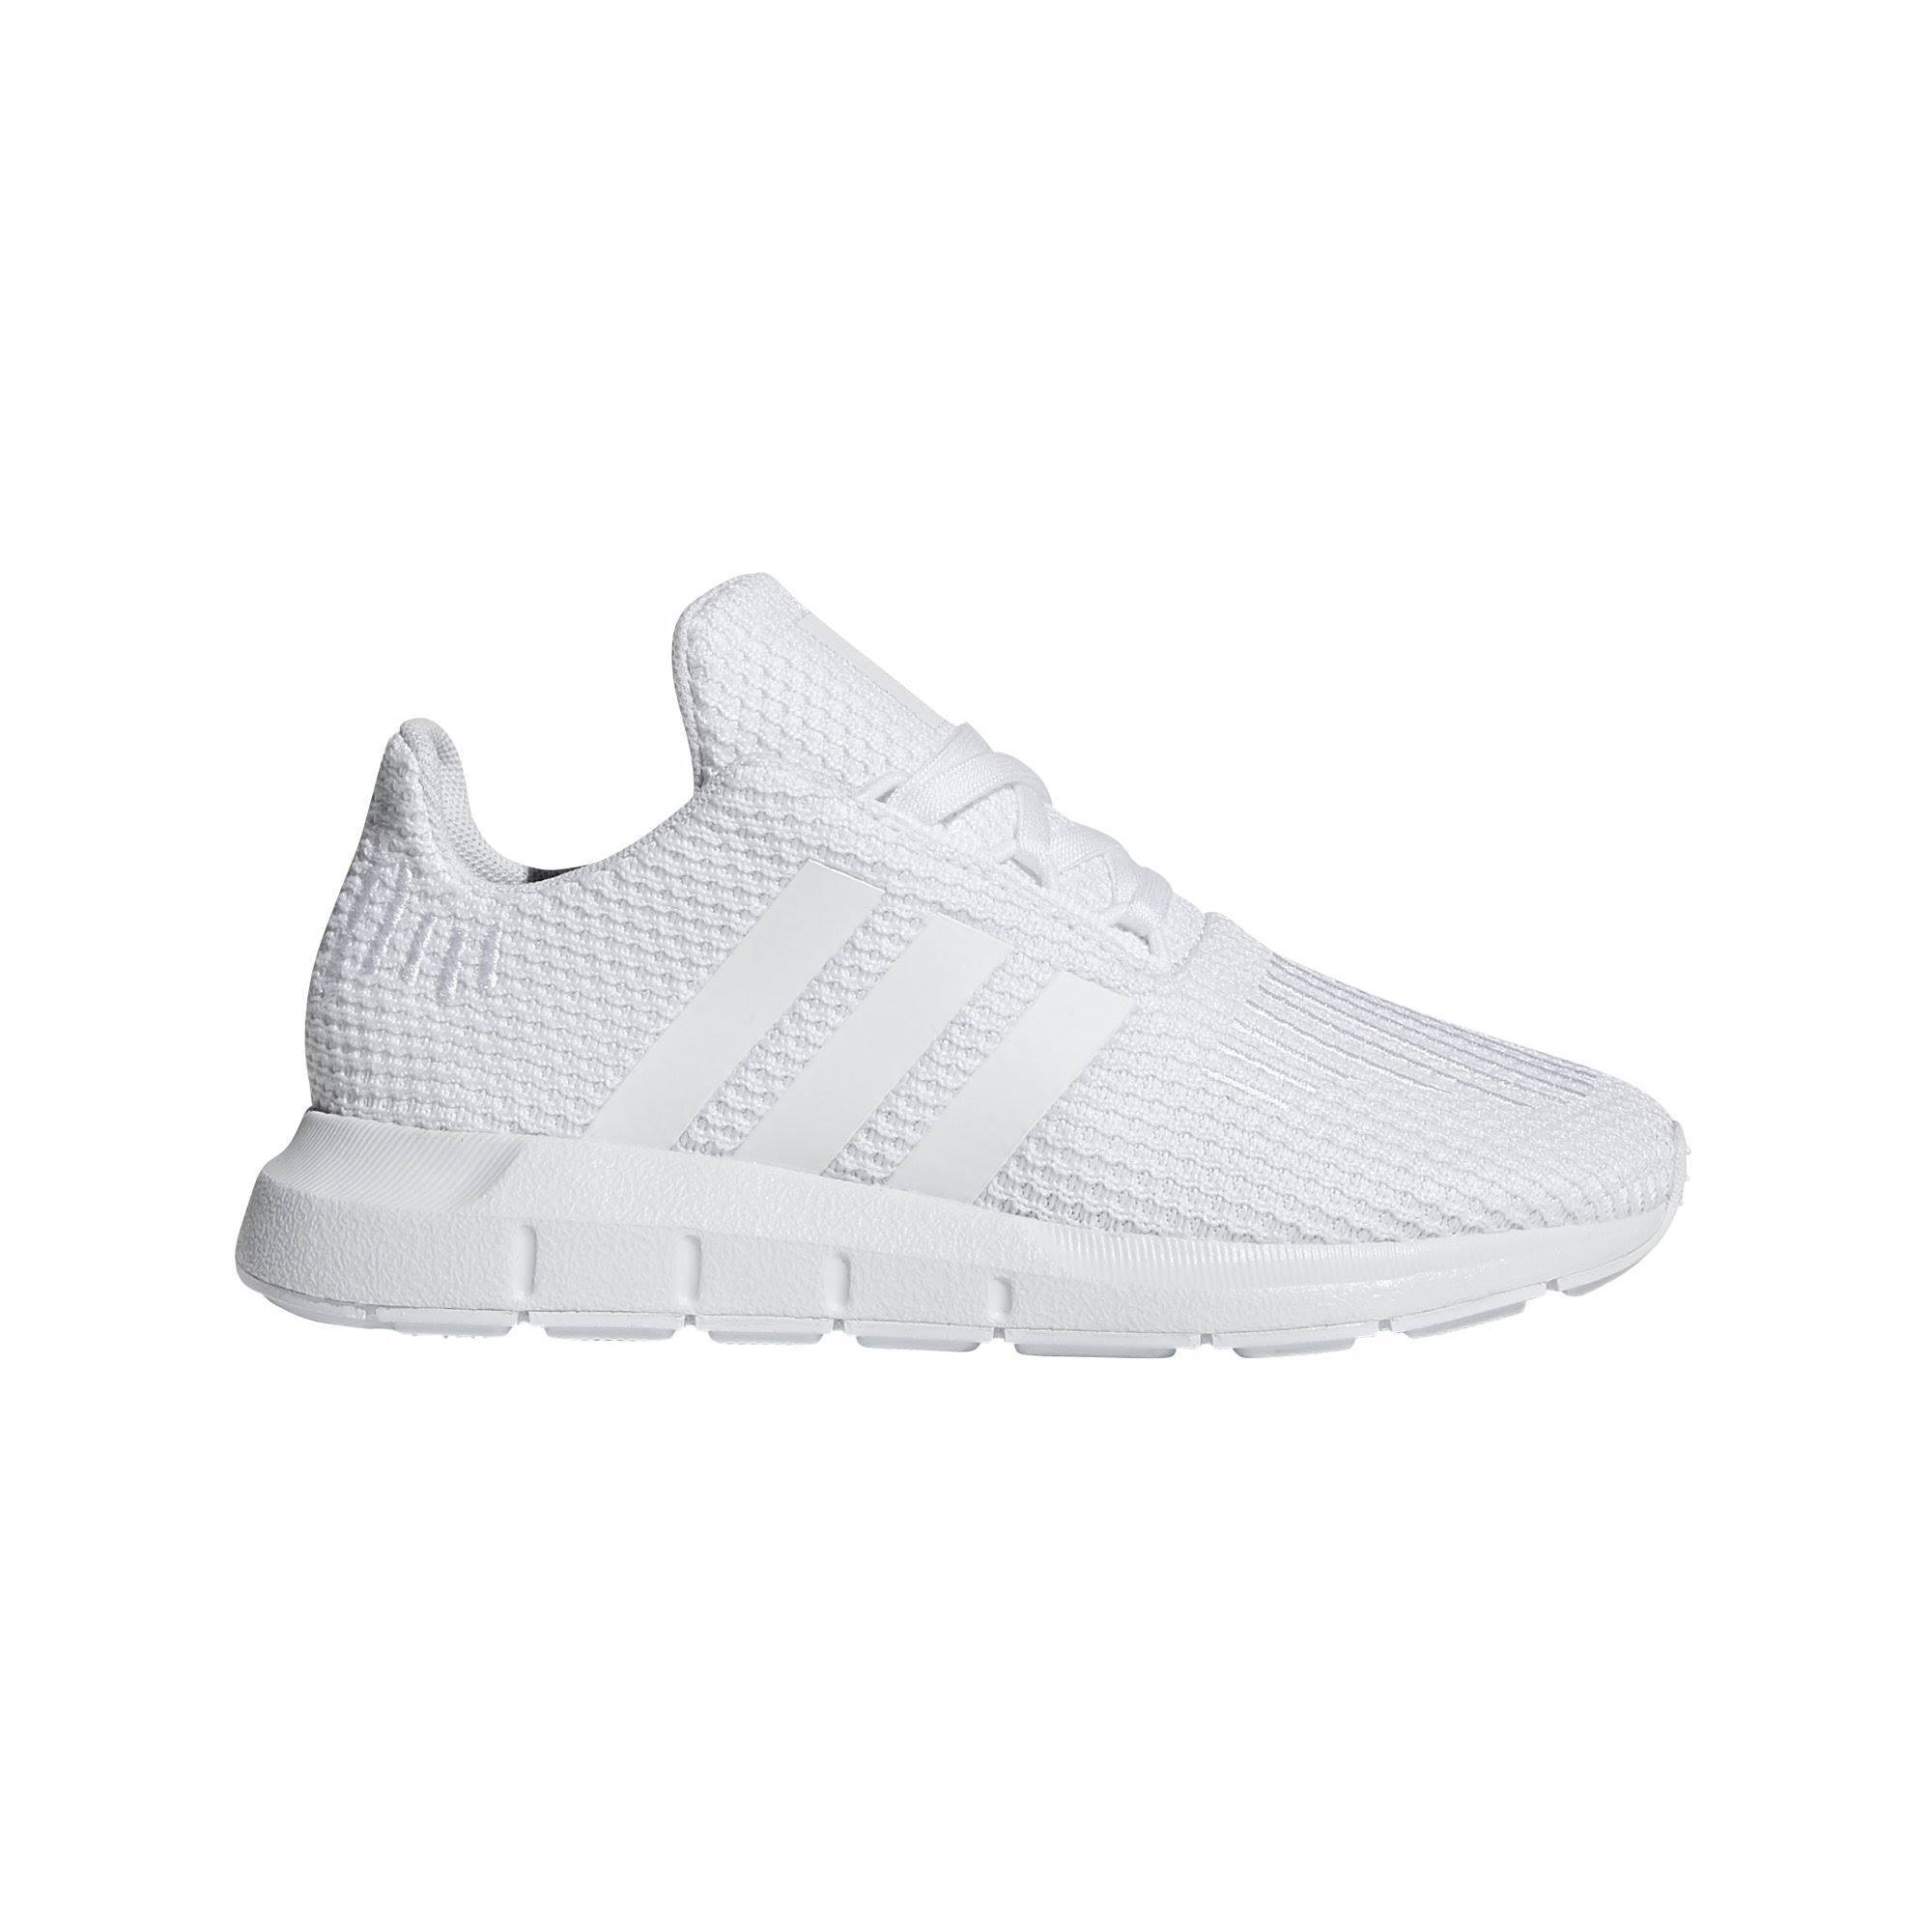 Adidas Originals Swift Run Shoes - Cloud White - Trainers